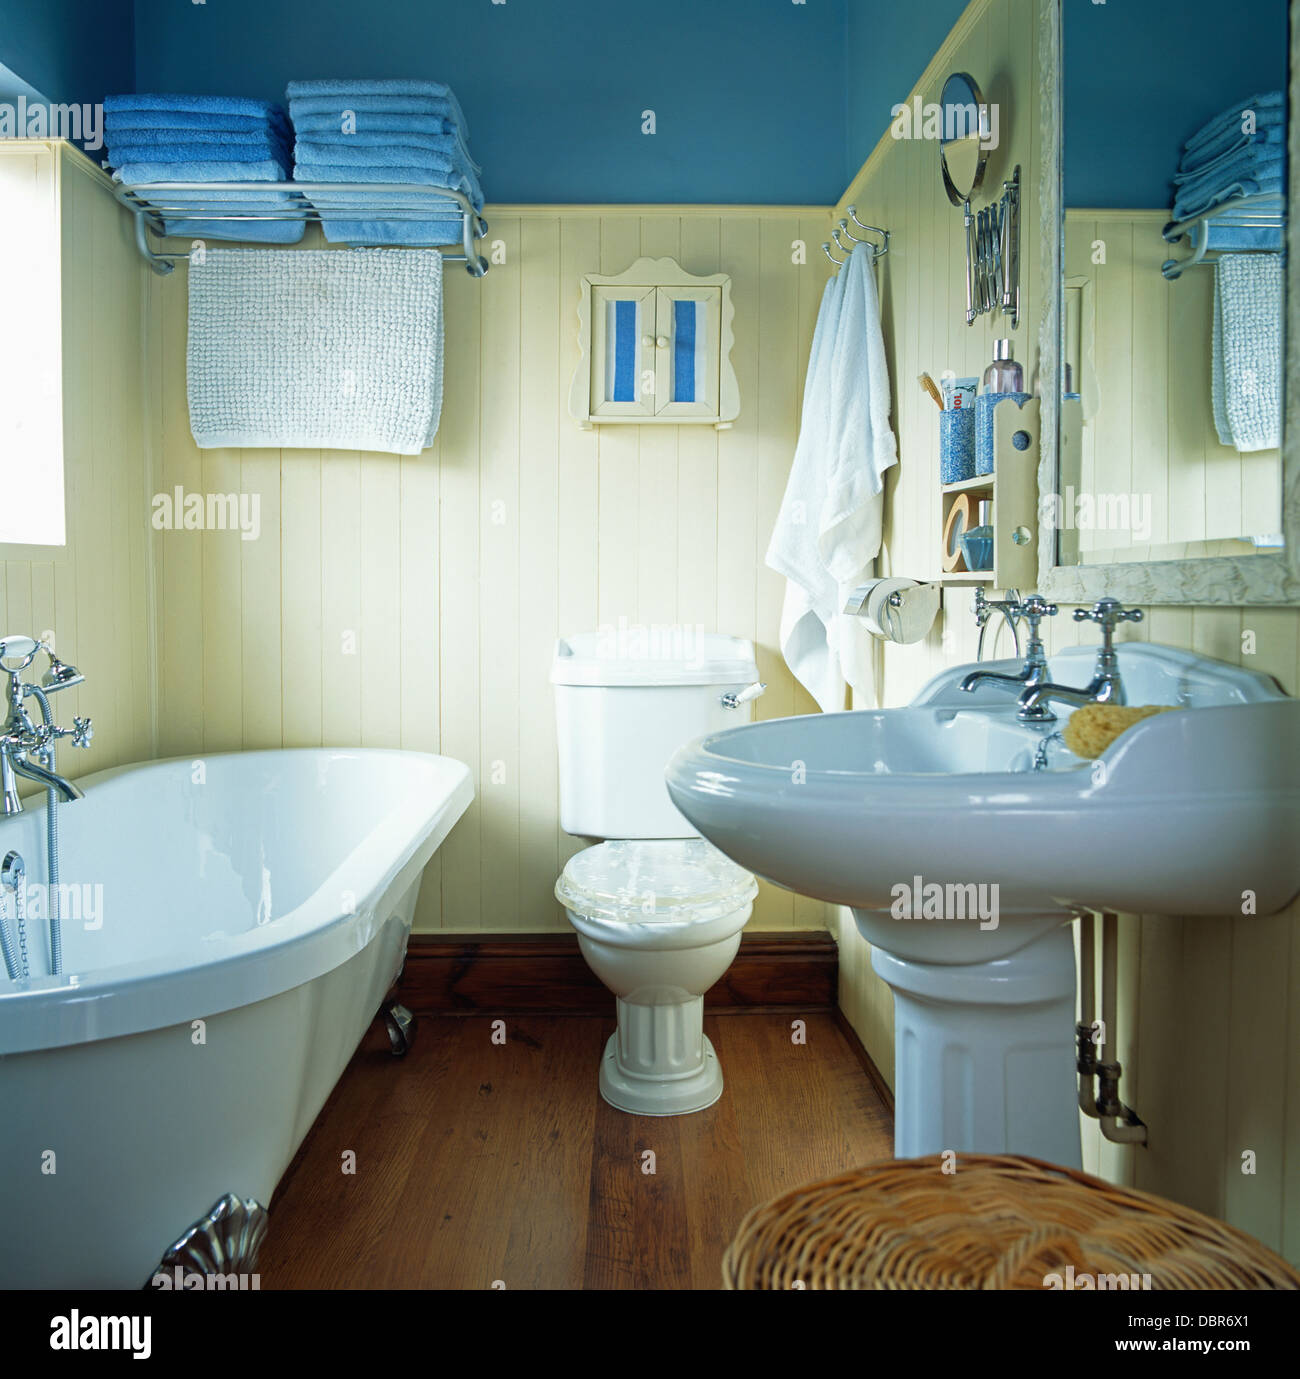 Claw-foot bath in blue bathroom with blue towels on chrome shelf on ...